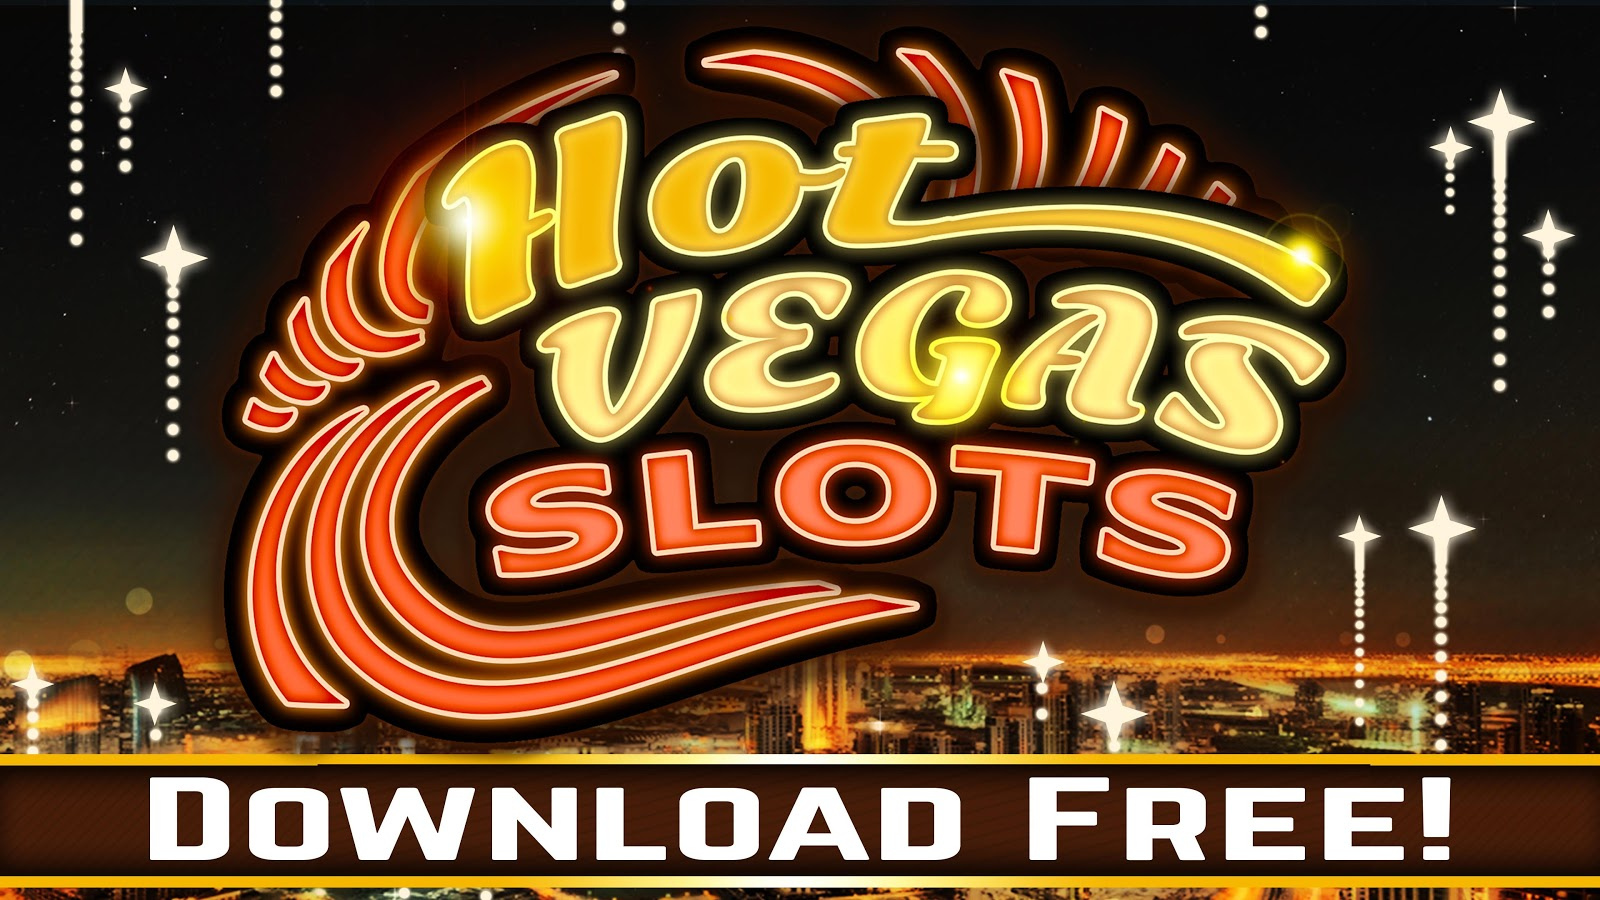 BigFroot Slot Machine - Try it Online for Free or Real Money